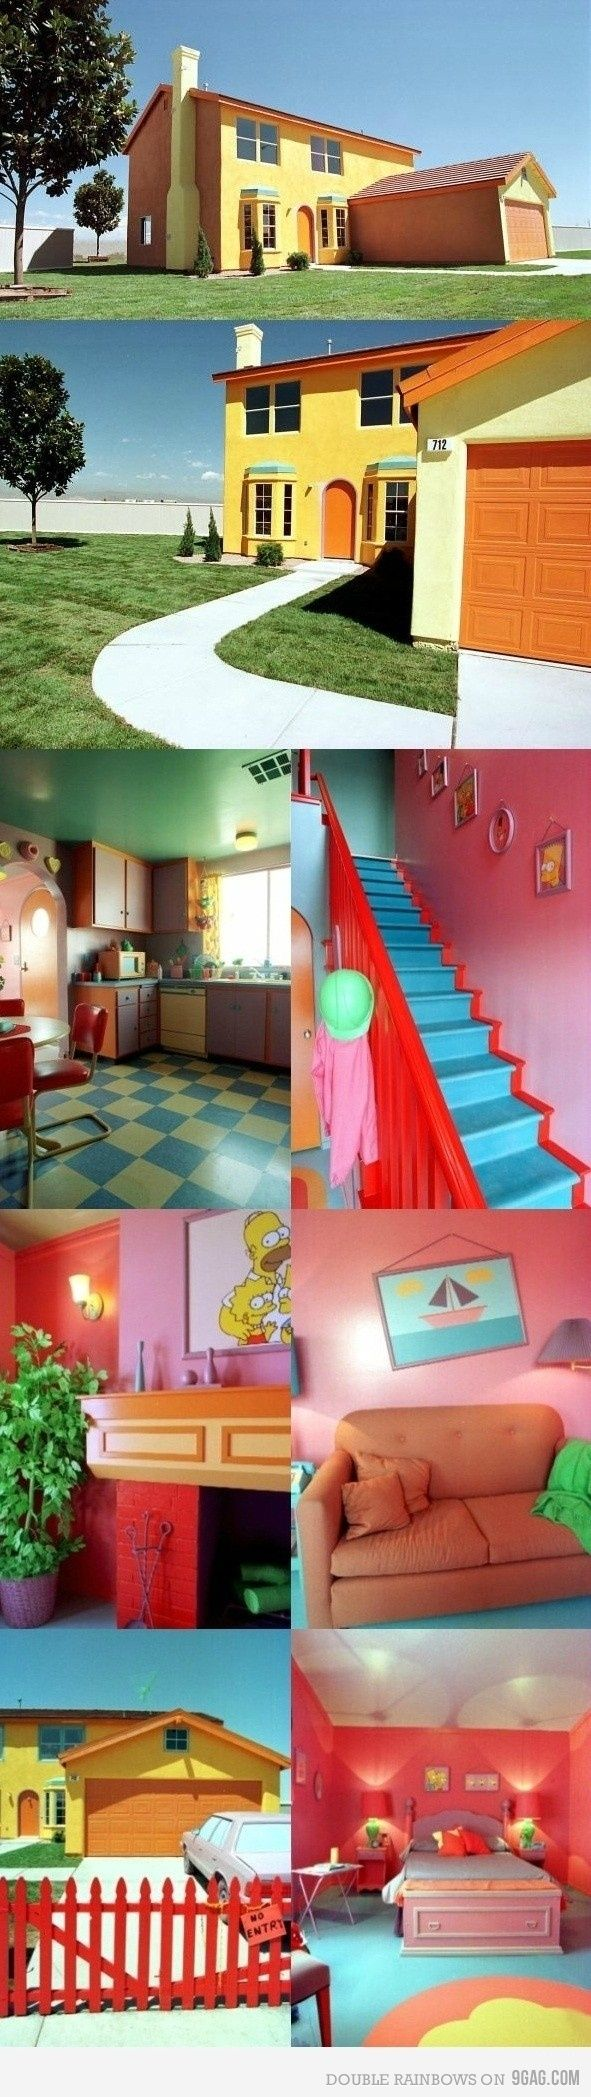 """Another pinner said: """"The Simpsons House!  I remember going here.. They let people tour it before the giveaway. After the giveaway it had to be painted to look normal on the outside and all the props were removed... Lame :0/"""""""